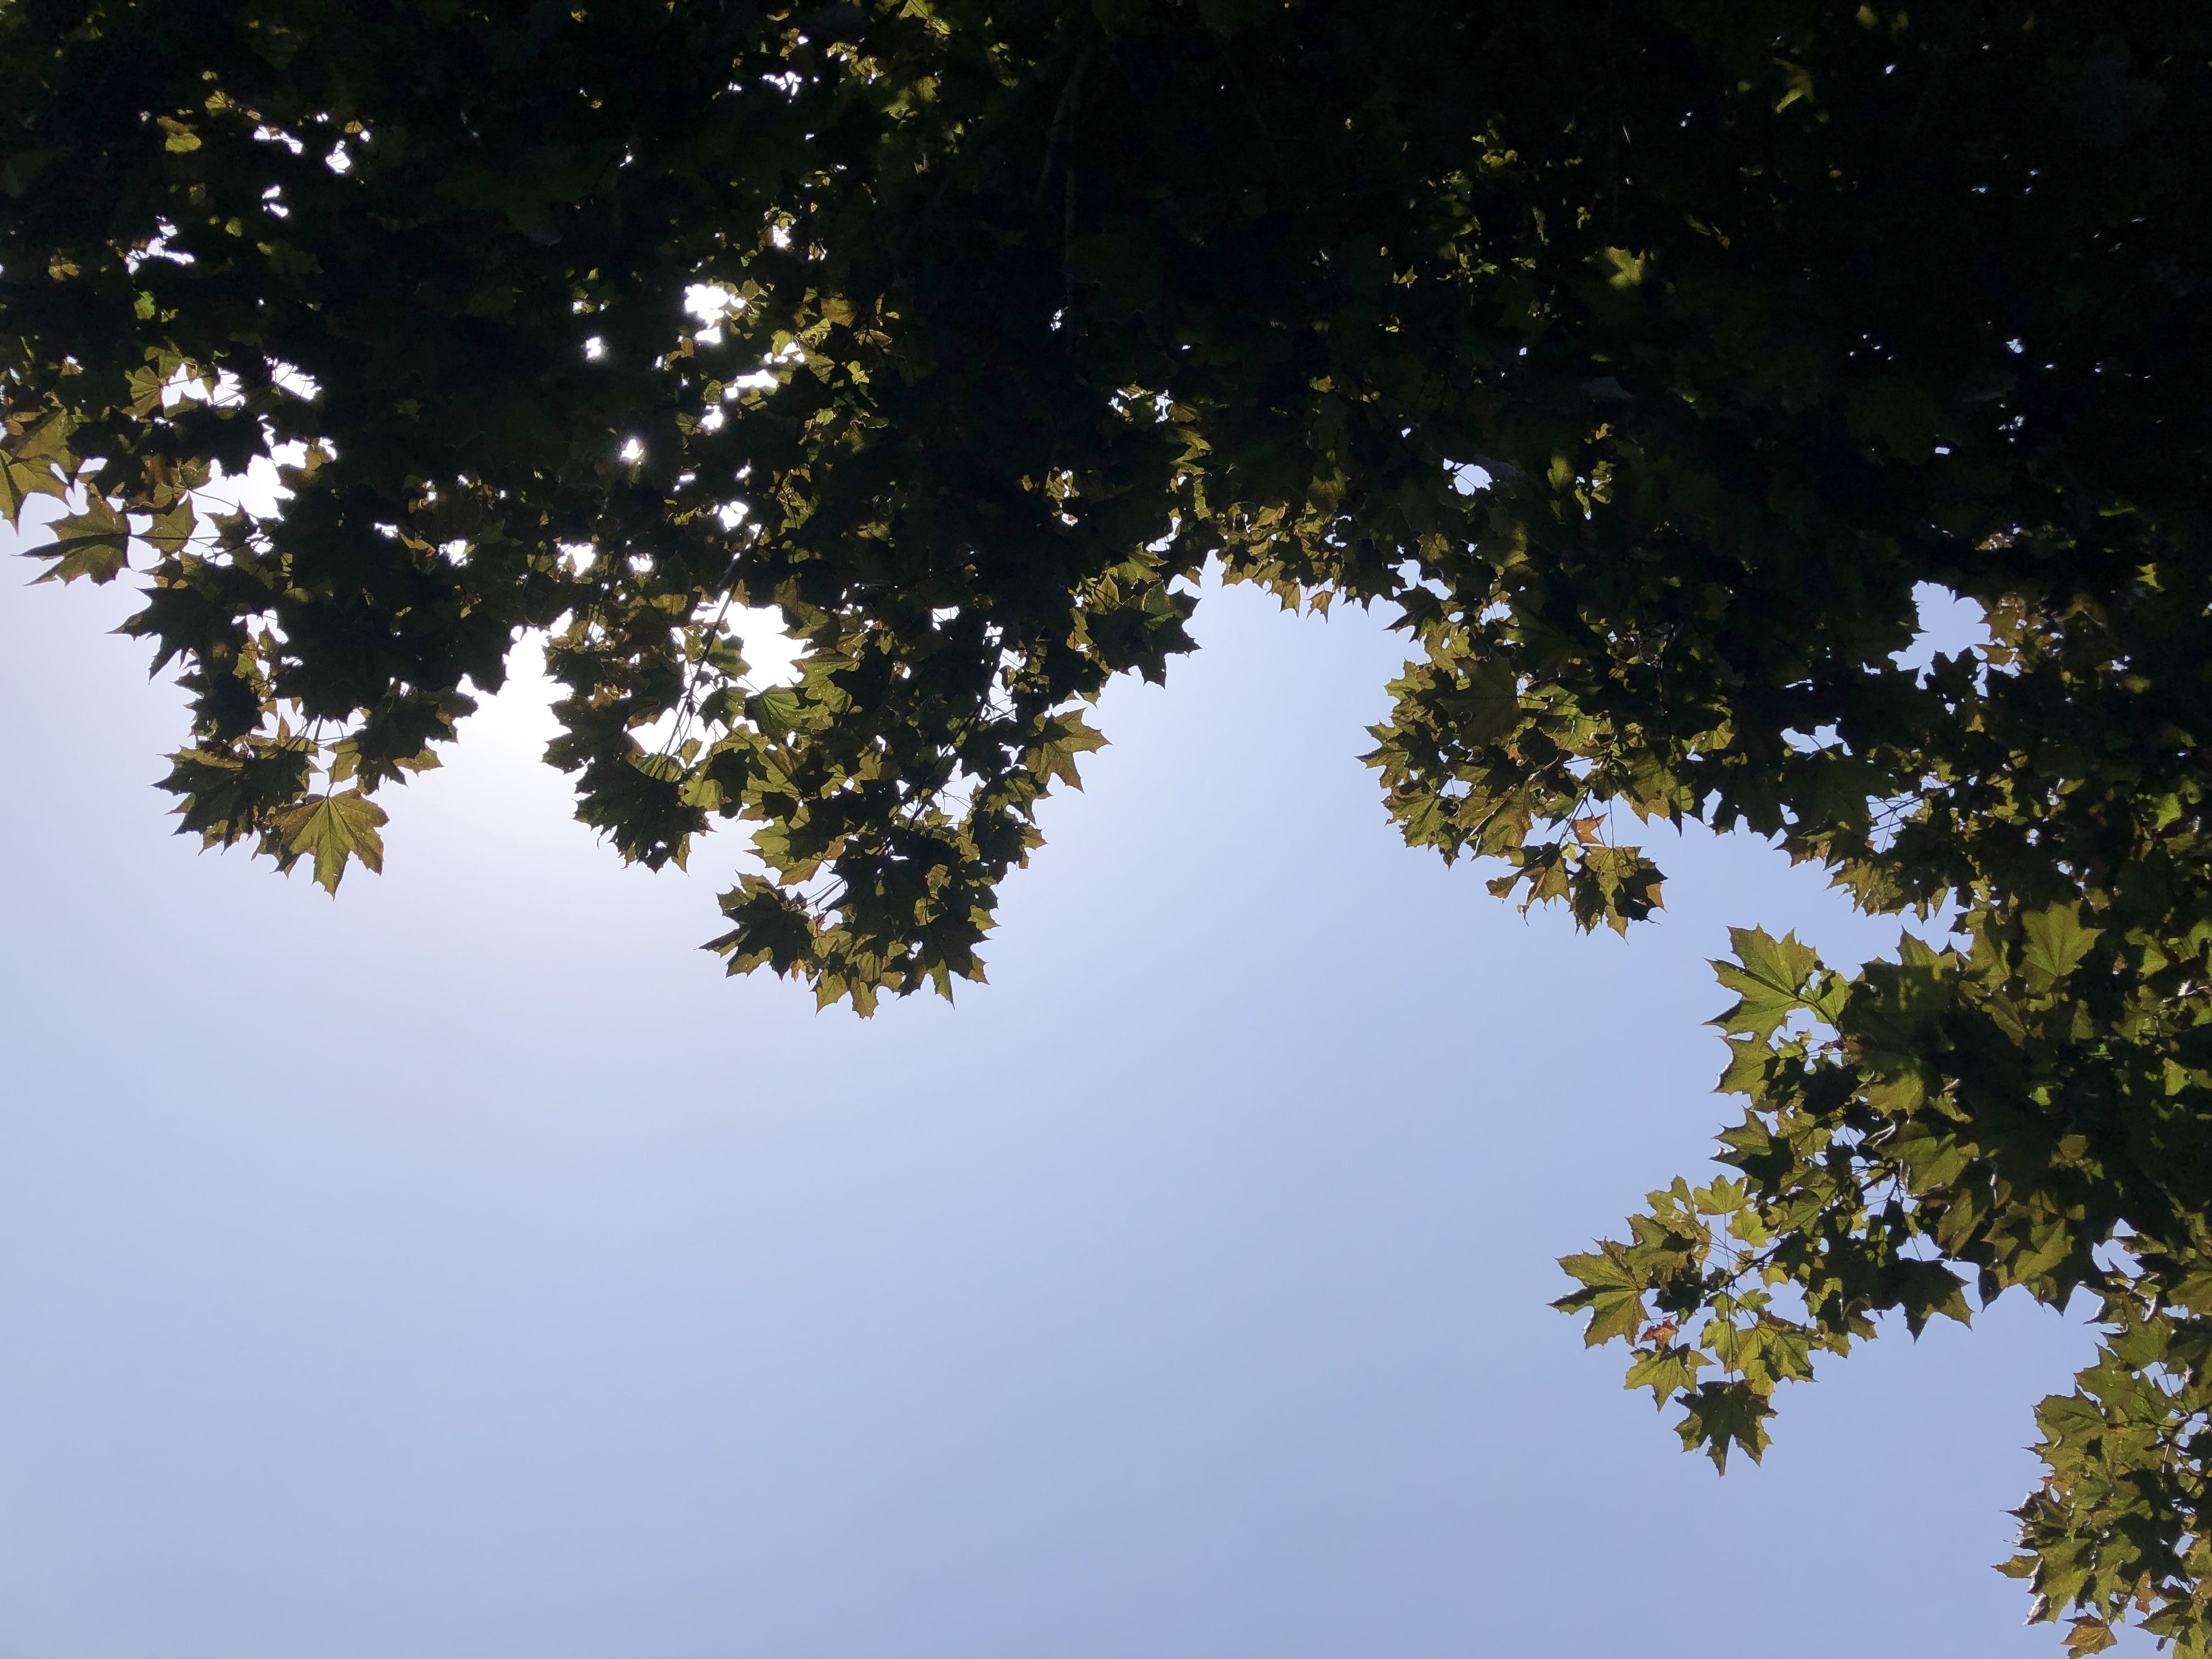 Poem: a day in July